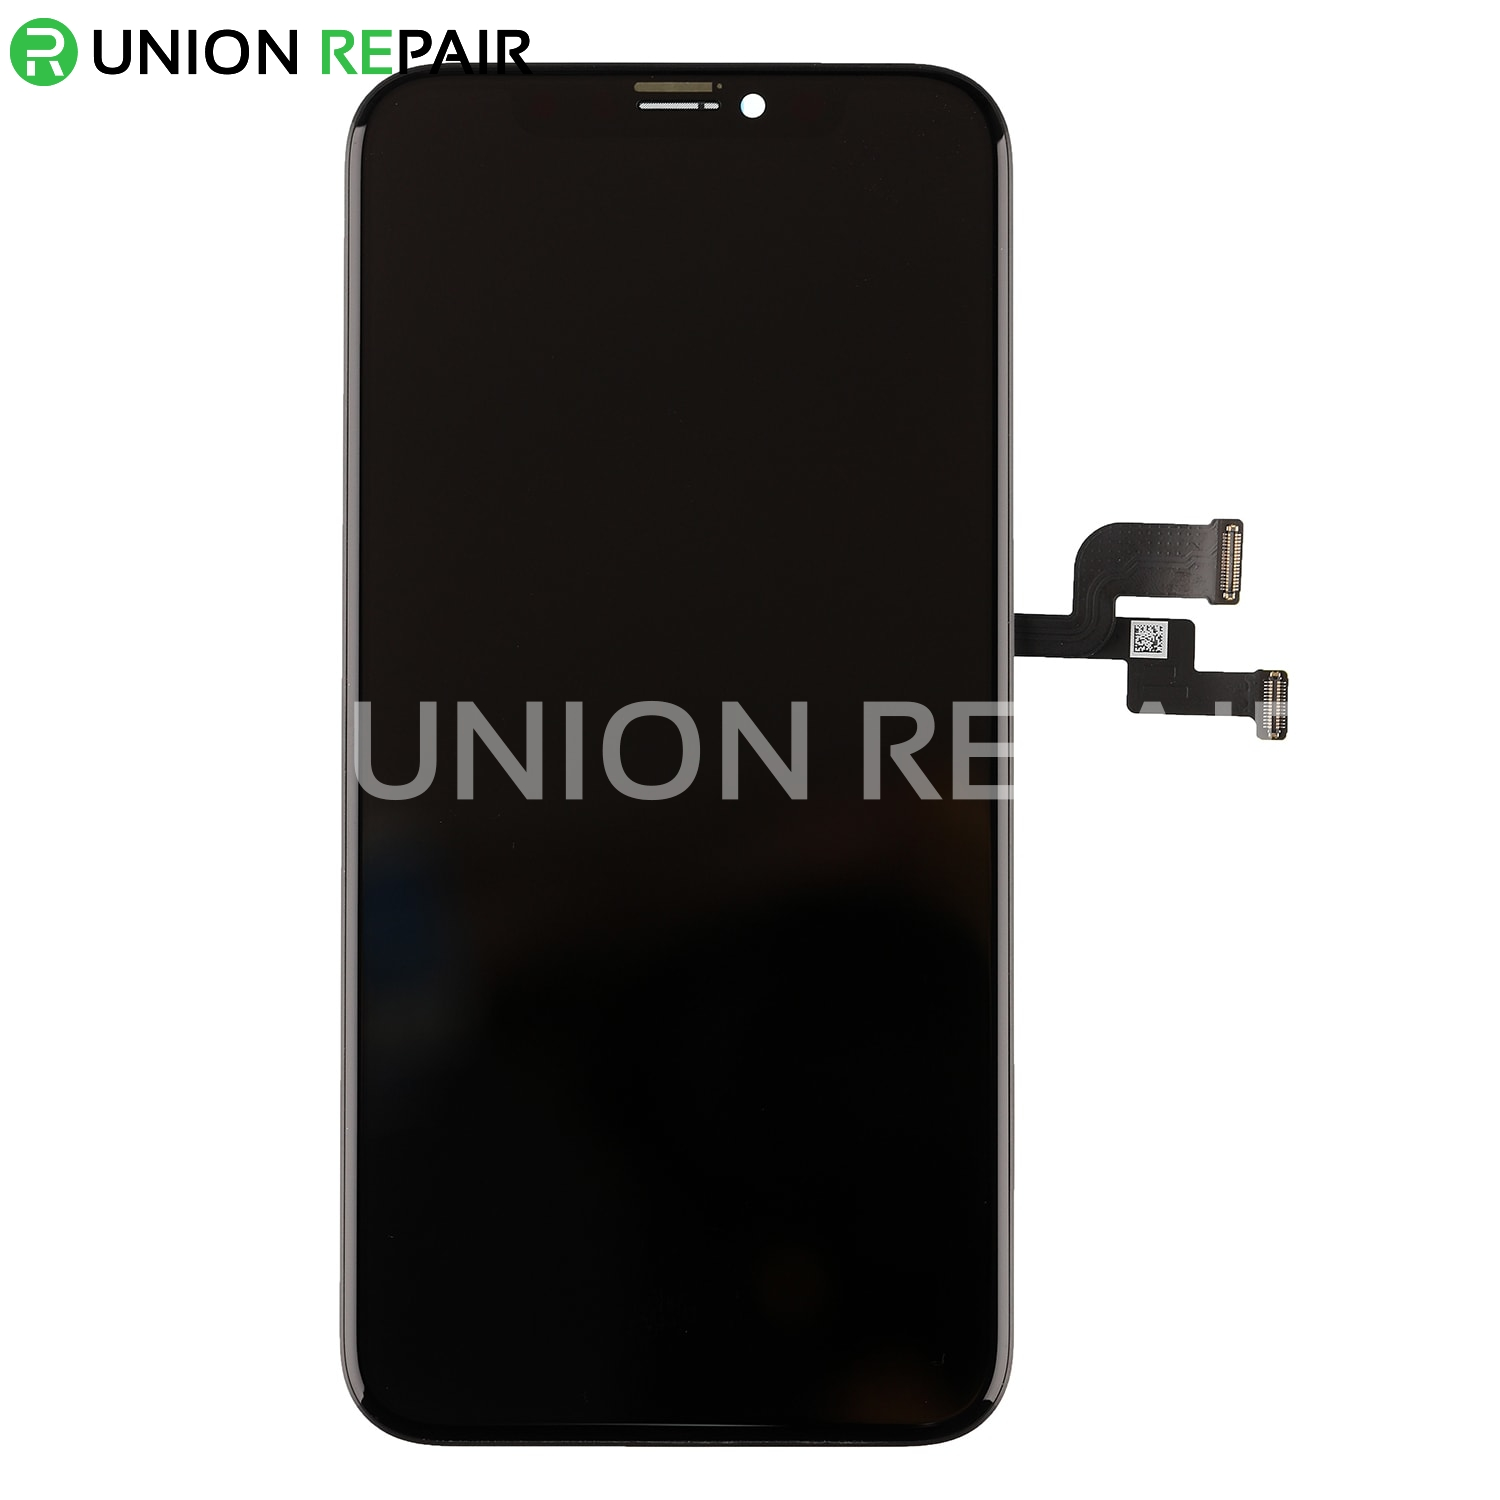 Replacement For iPhone X OLED Screen Digitizer Assembly - Black